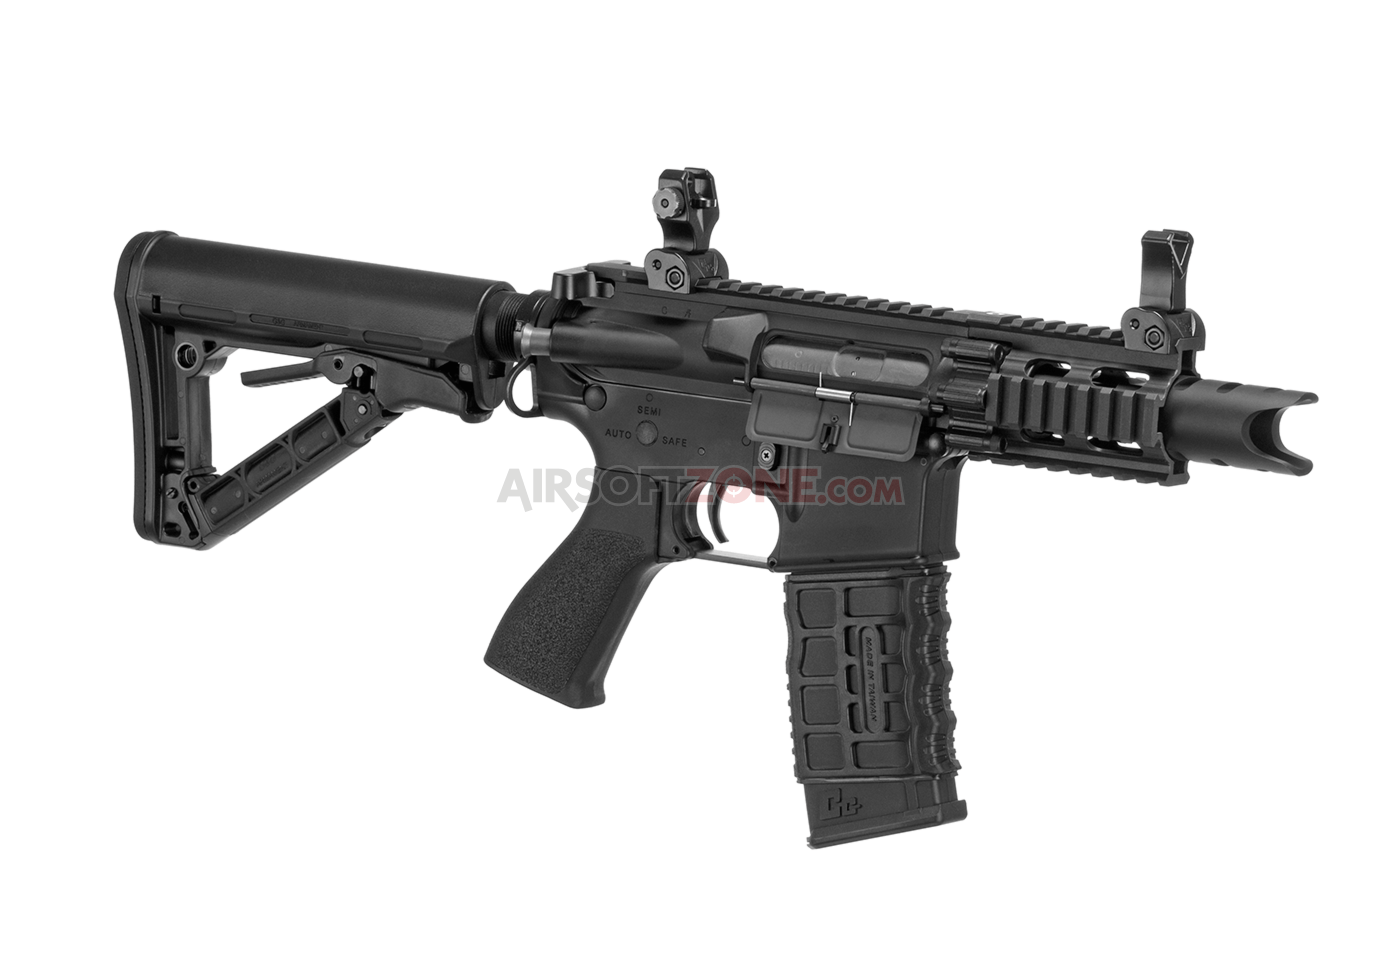 firehawk black g g aeg airsoft aeg rifles online shop. Black Bedroom Furniture Sets. Home Design Ideas